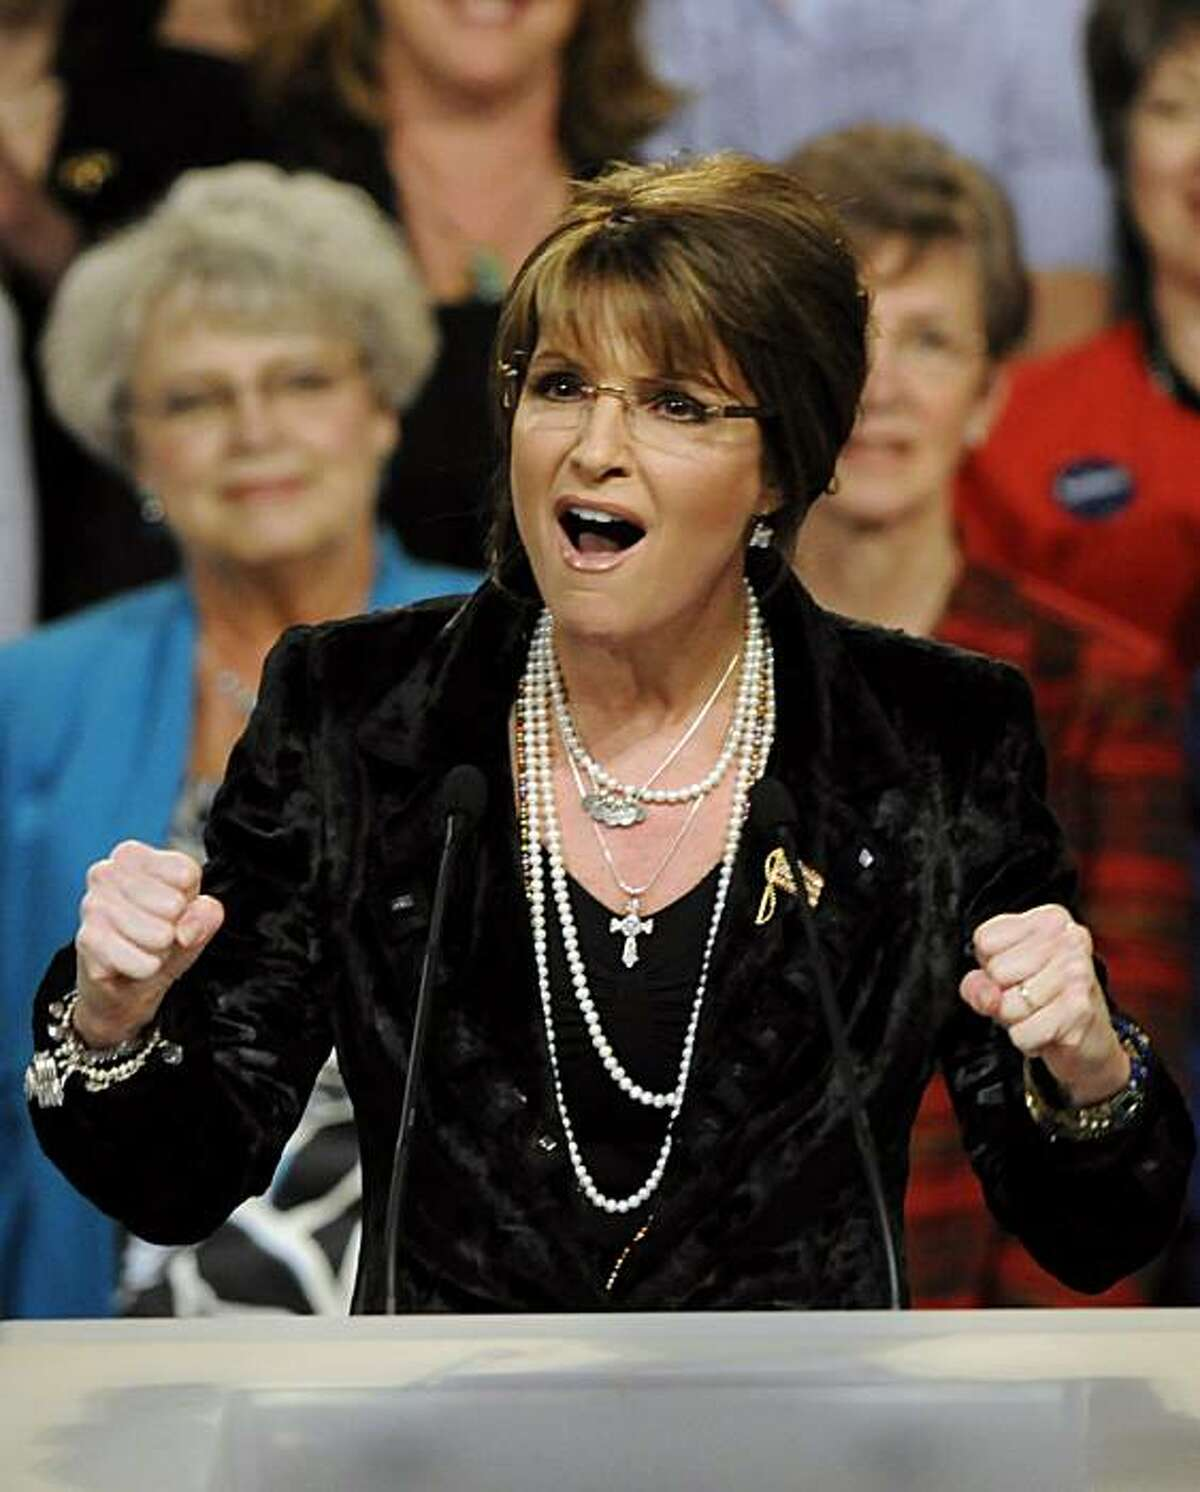 Sarah Palin addresses a Minnesota Republican Party rally for Rep. Michele Bachmann, R-Minn., Wednesday April 7, 2010 in Minneapolis.